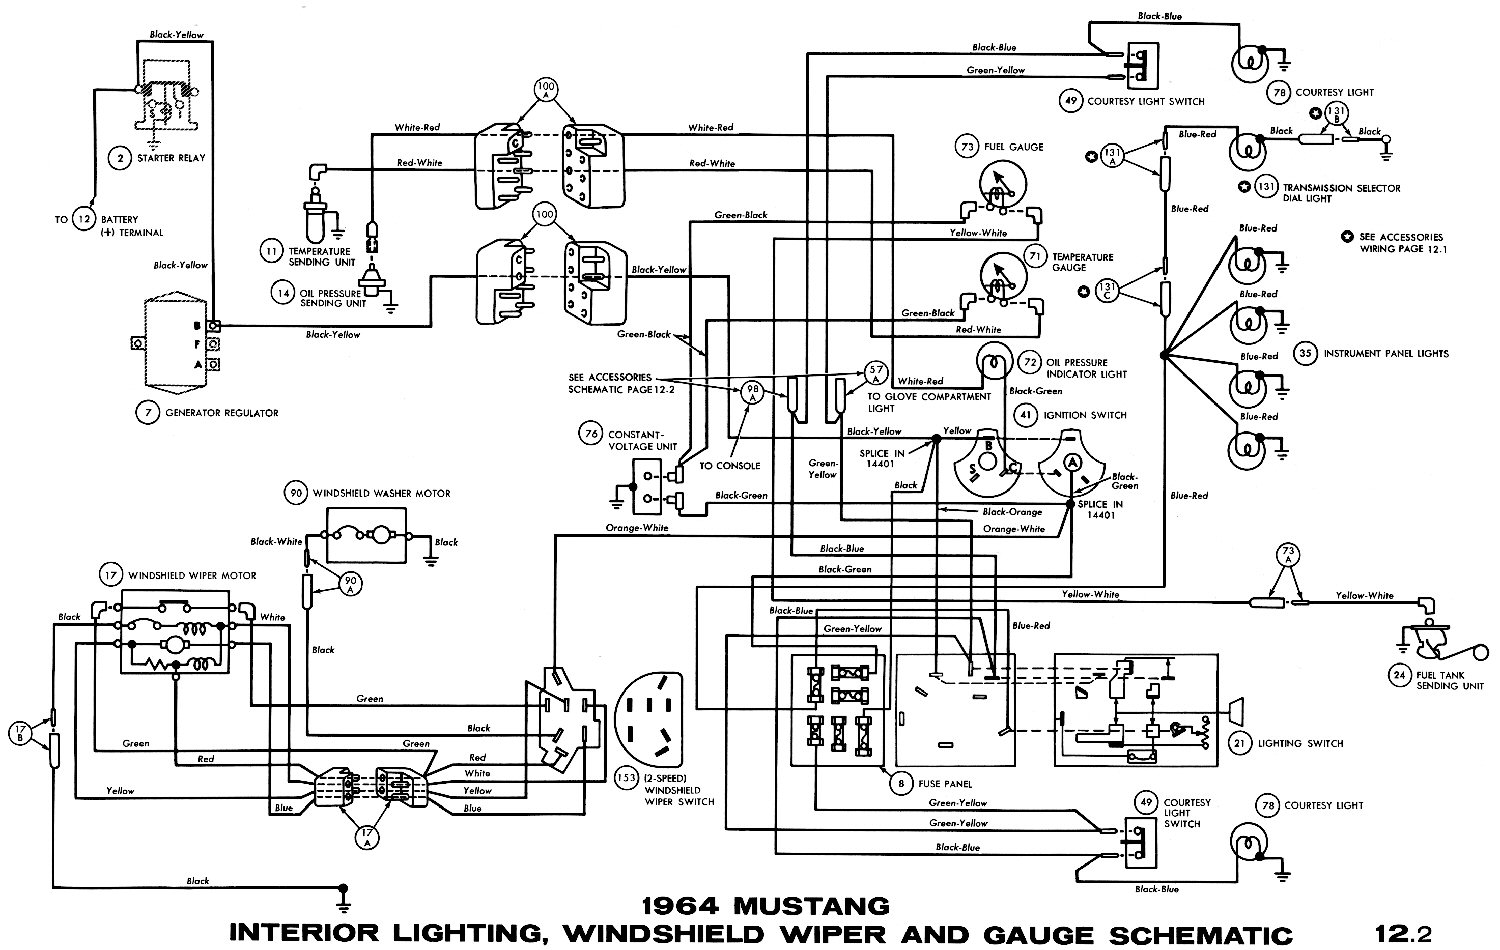 1964k 1967 mustang wiring diagram 1967 mustang radio wiring diagram  at bayanpartner.co